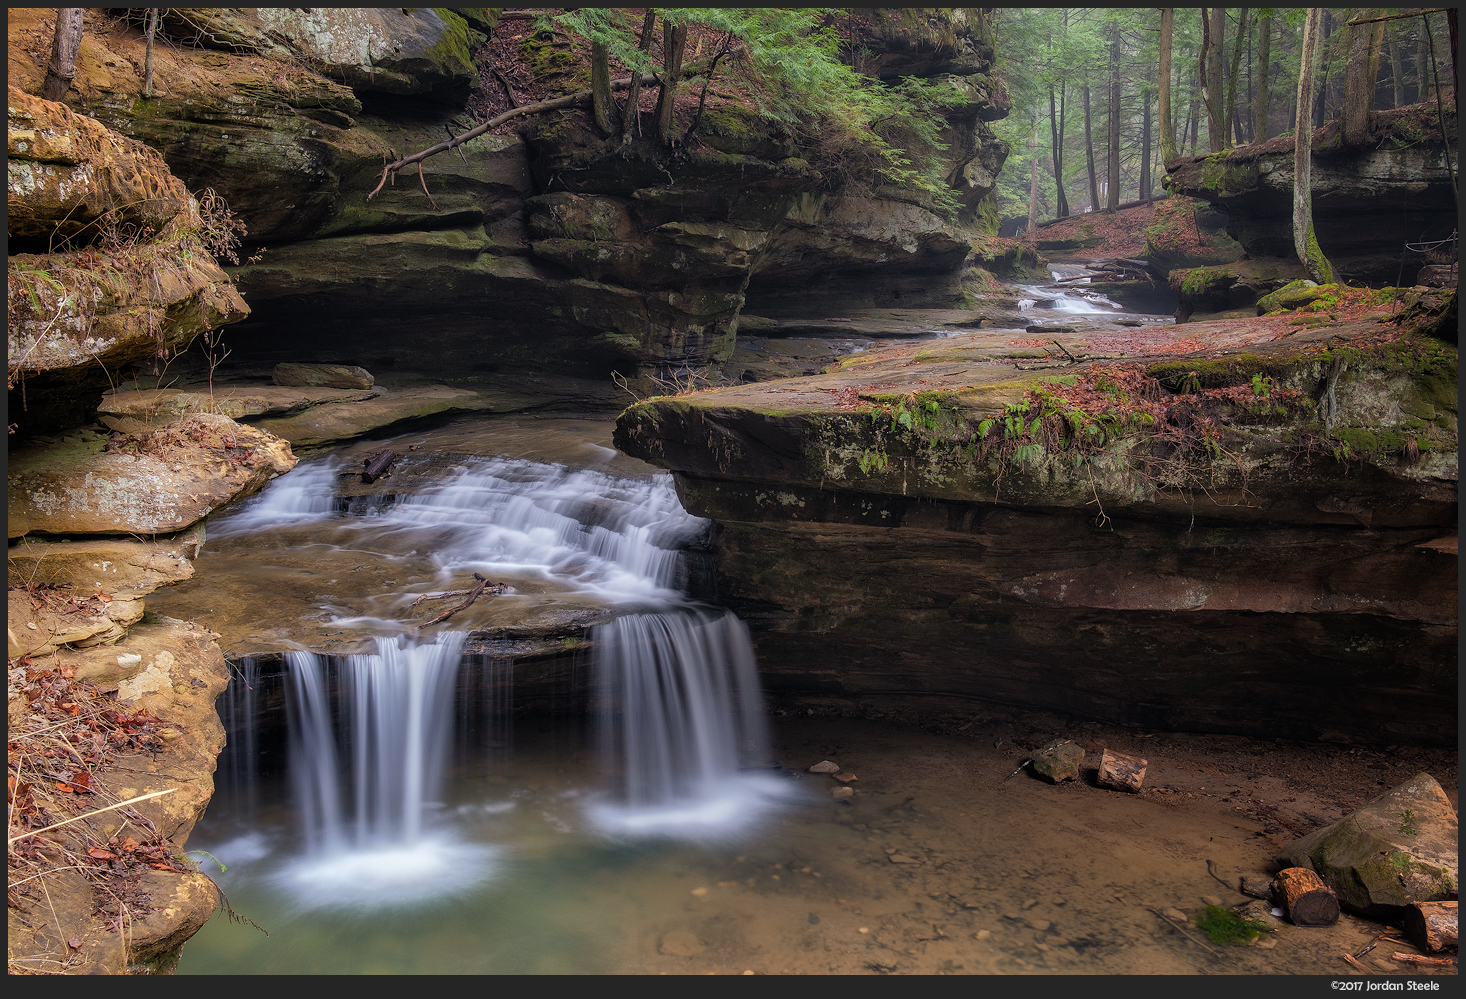 Middle Falls, Hocking Hills - Fujifilm X-T2 with Fujinon XF 23mm f/2 R WR @